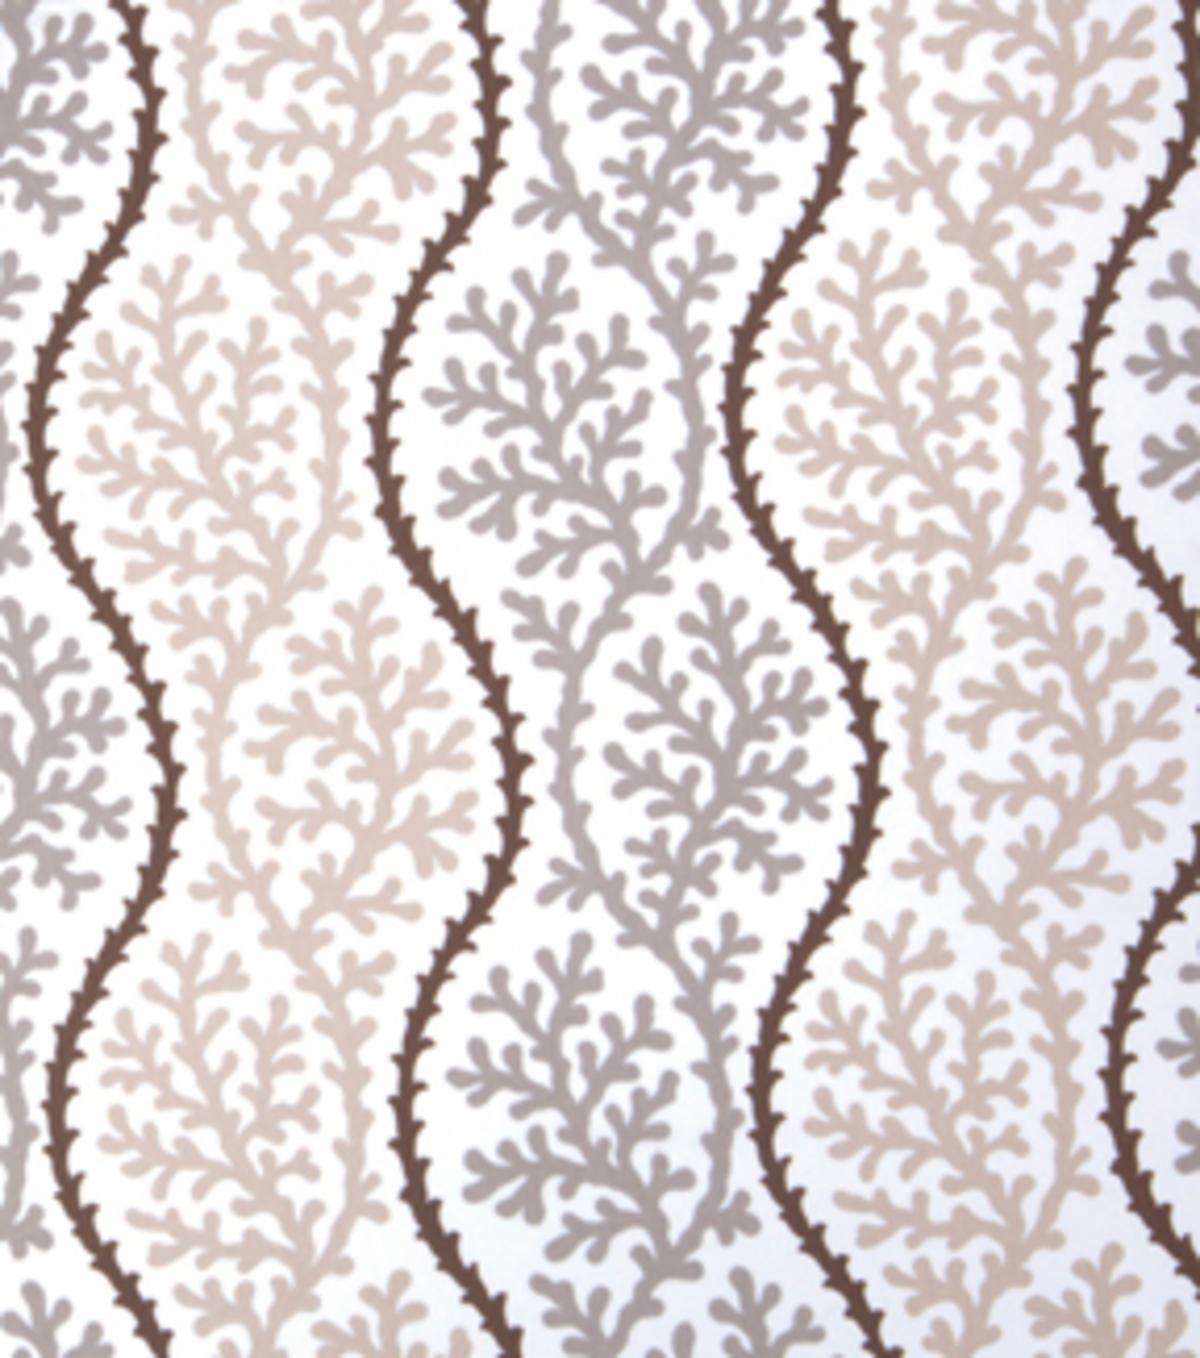 Home Decor 8\u0022x8\u0022 Fabric Swatch-Upholstery Fabric Eaton Square Ducks Pebble